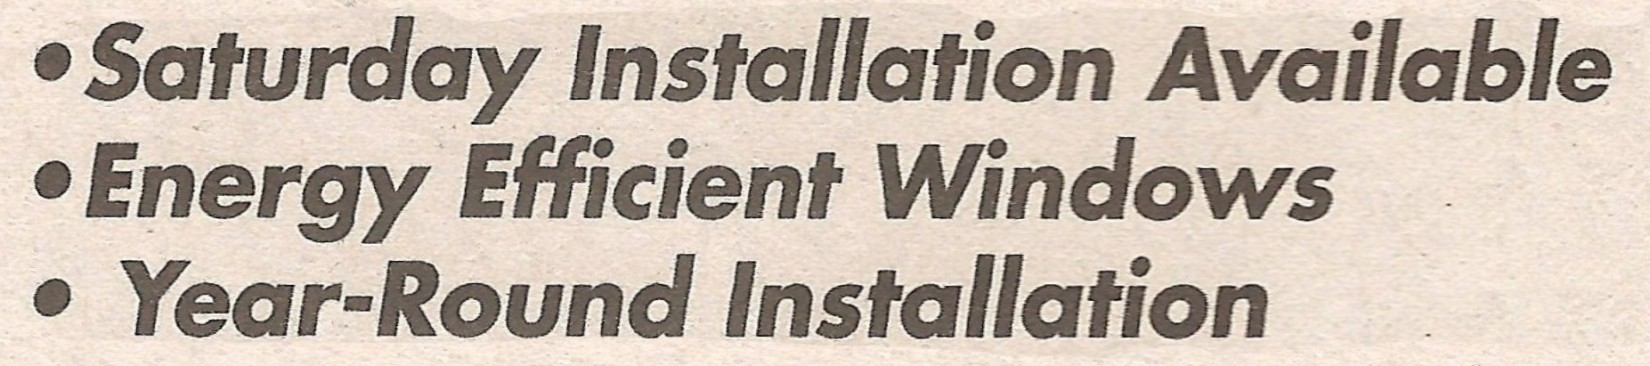 """Saturday Installation Available..."" Font"